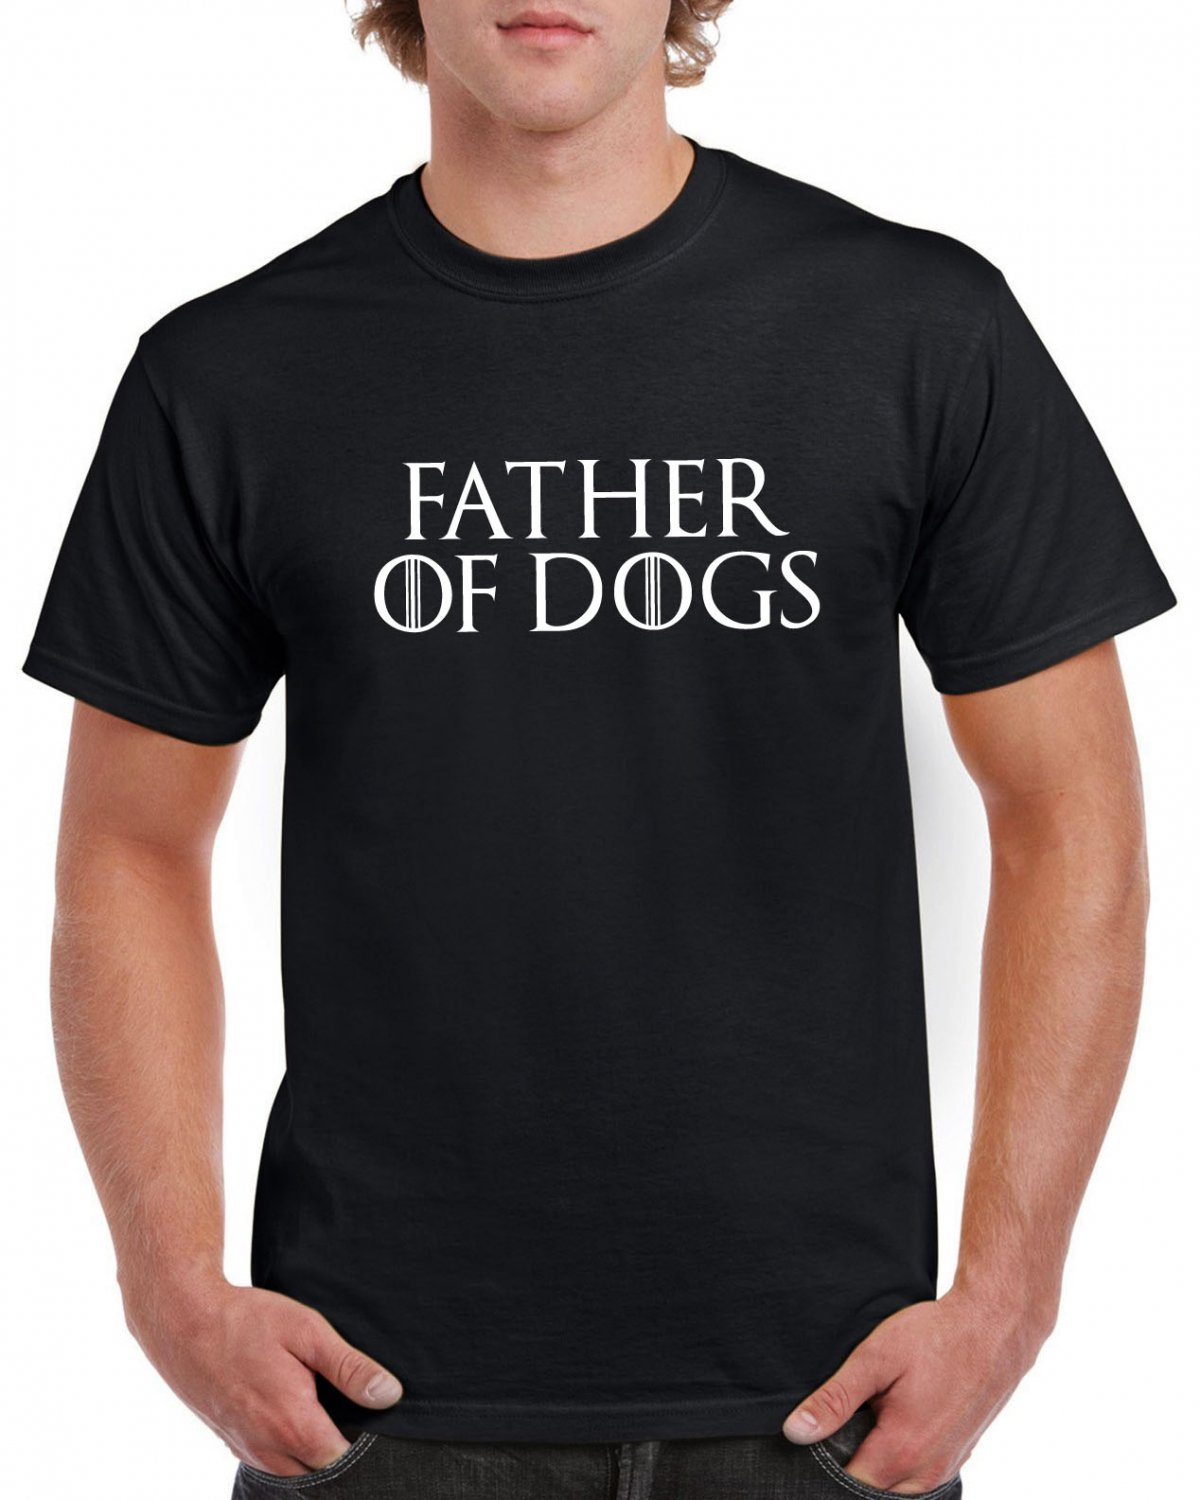 Father Of Dogs T-shirt Game Of Thrones Parody Dog Lovers Owner Puppy Tshirt Cool Unisex Top Tee